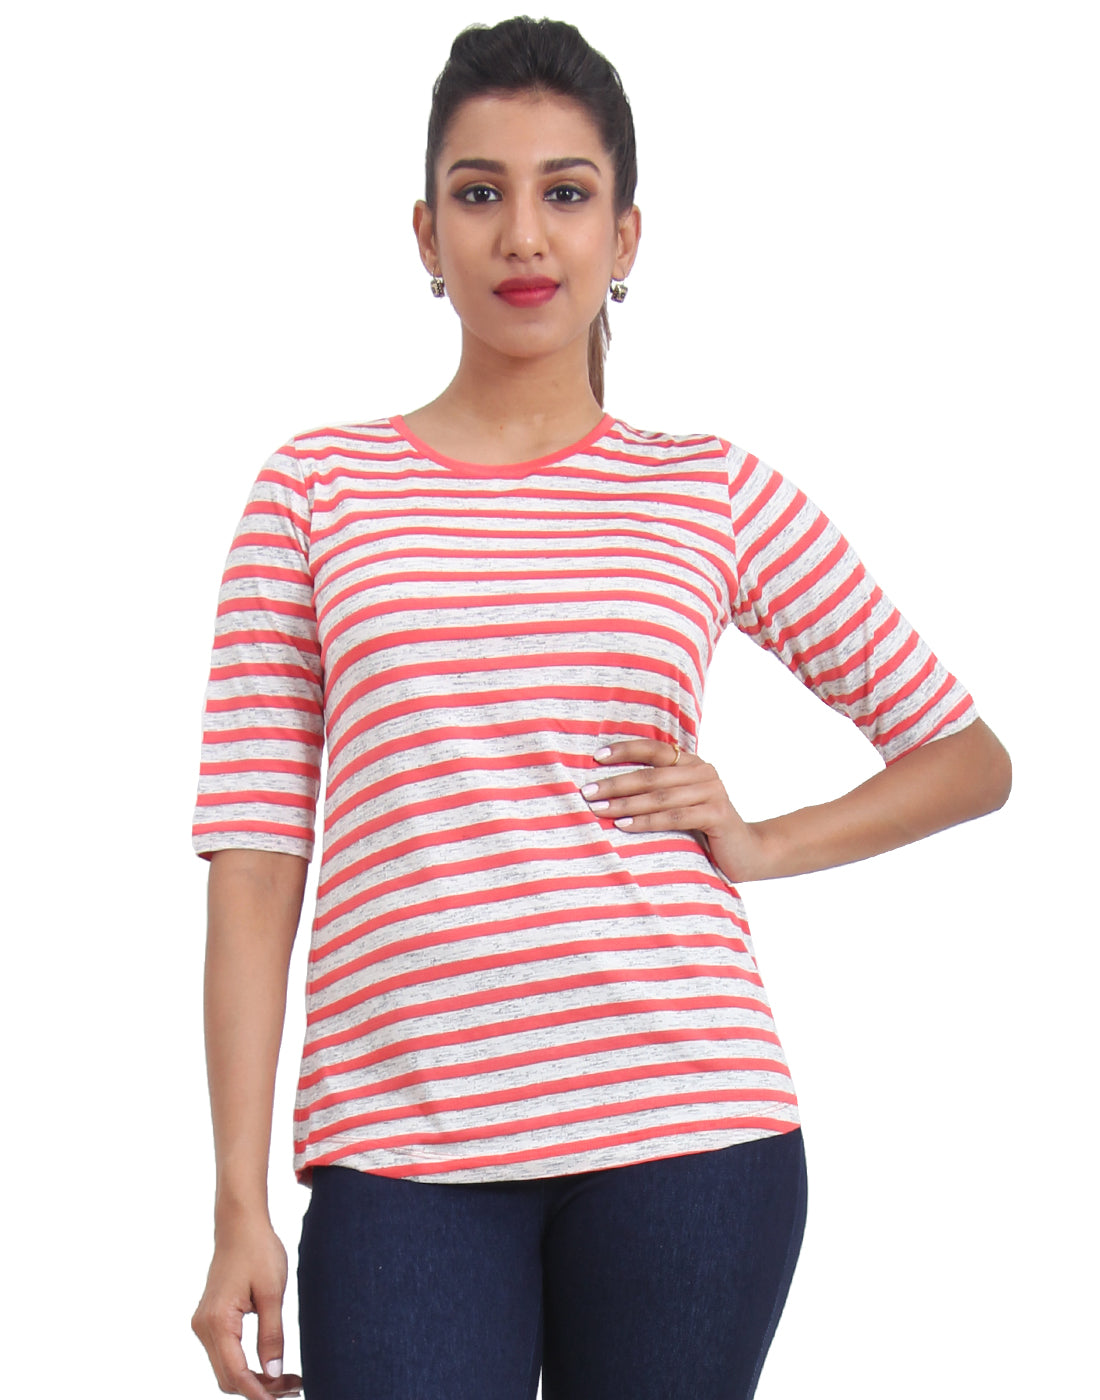 Peach Striped Knitted Women's T-shirt